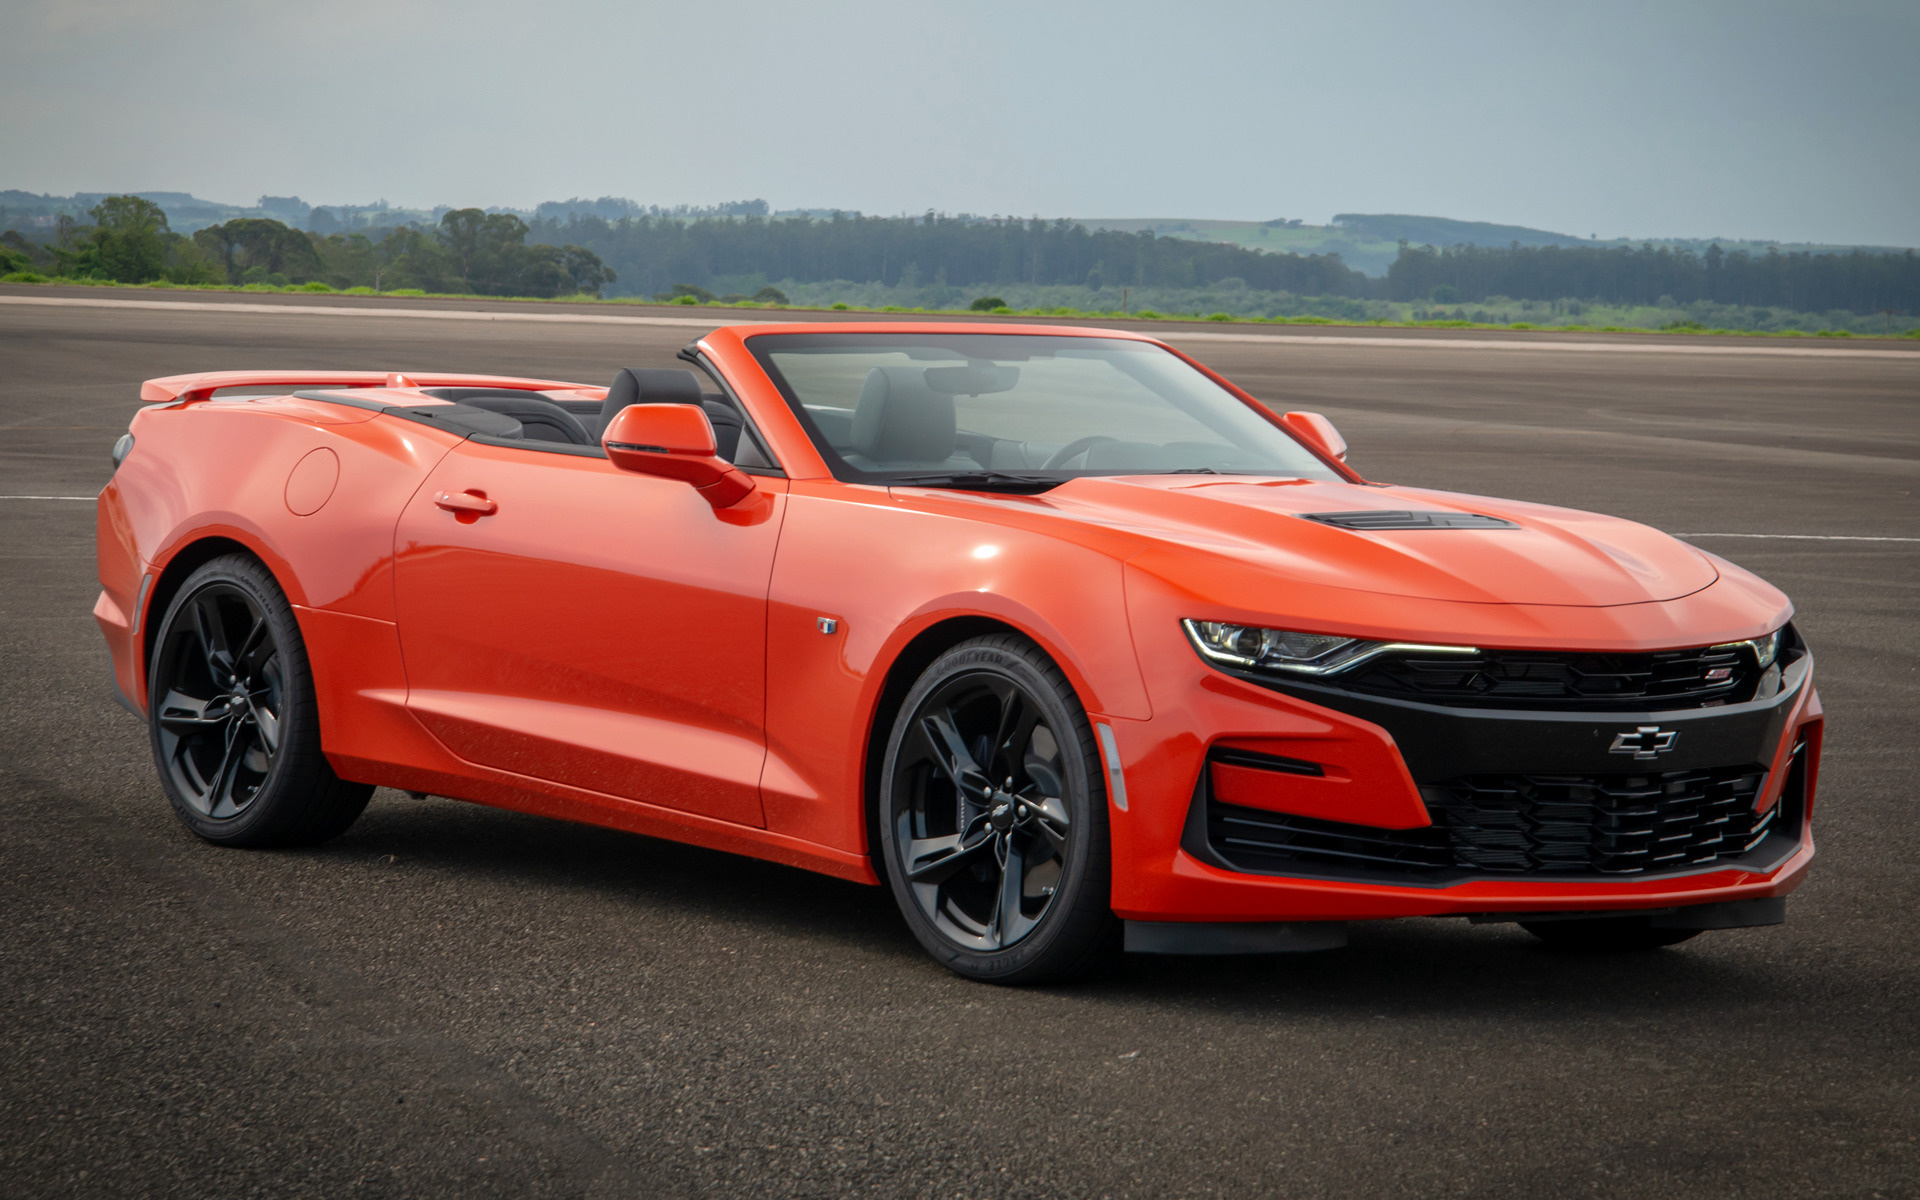 2019 Chevrolet Camaro SS Convertible (BR) - Wallpapers and ...